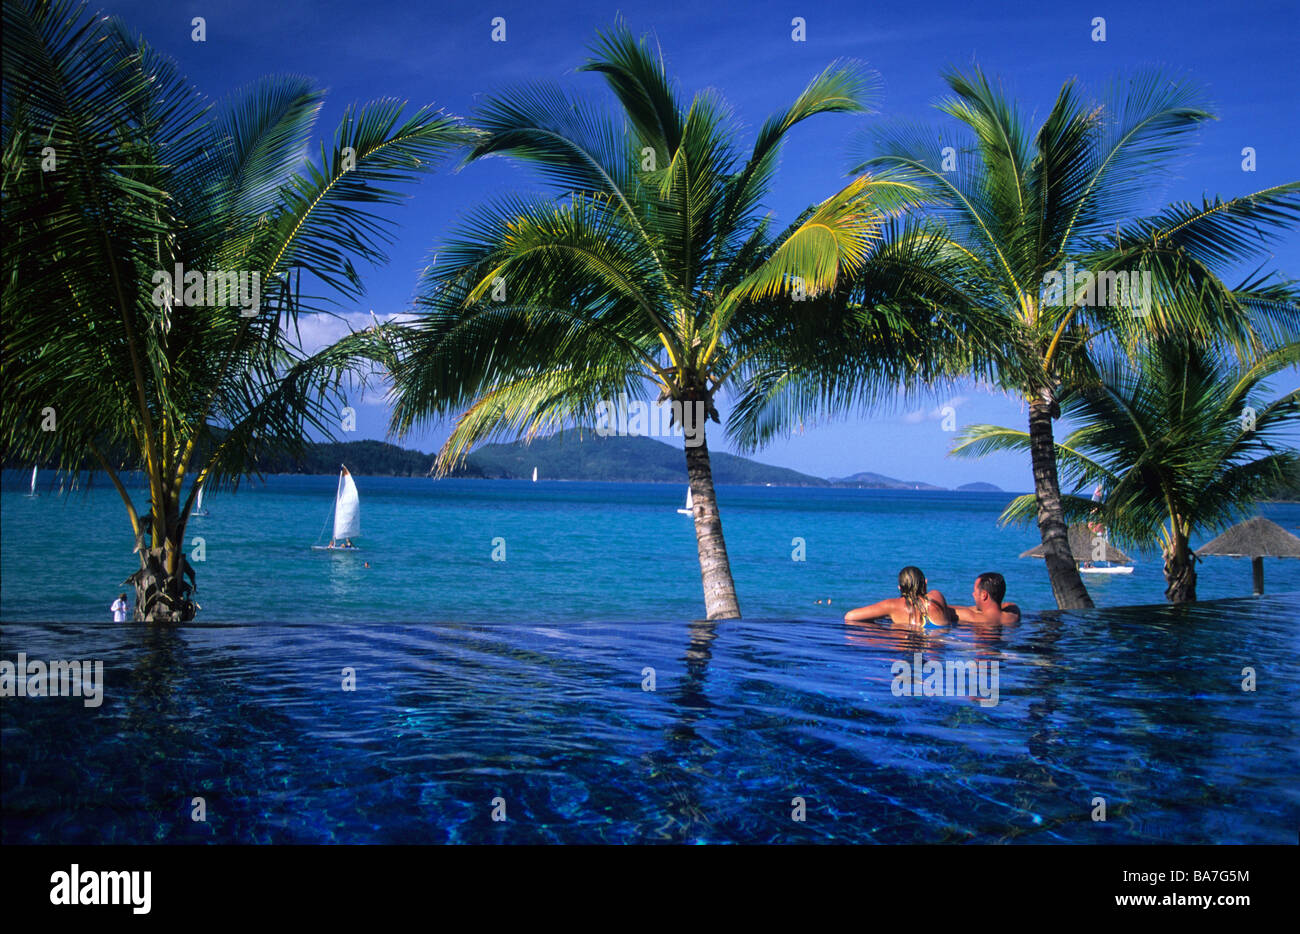 Couple In The Pool Of The Luxury Beach Club Resort On